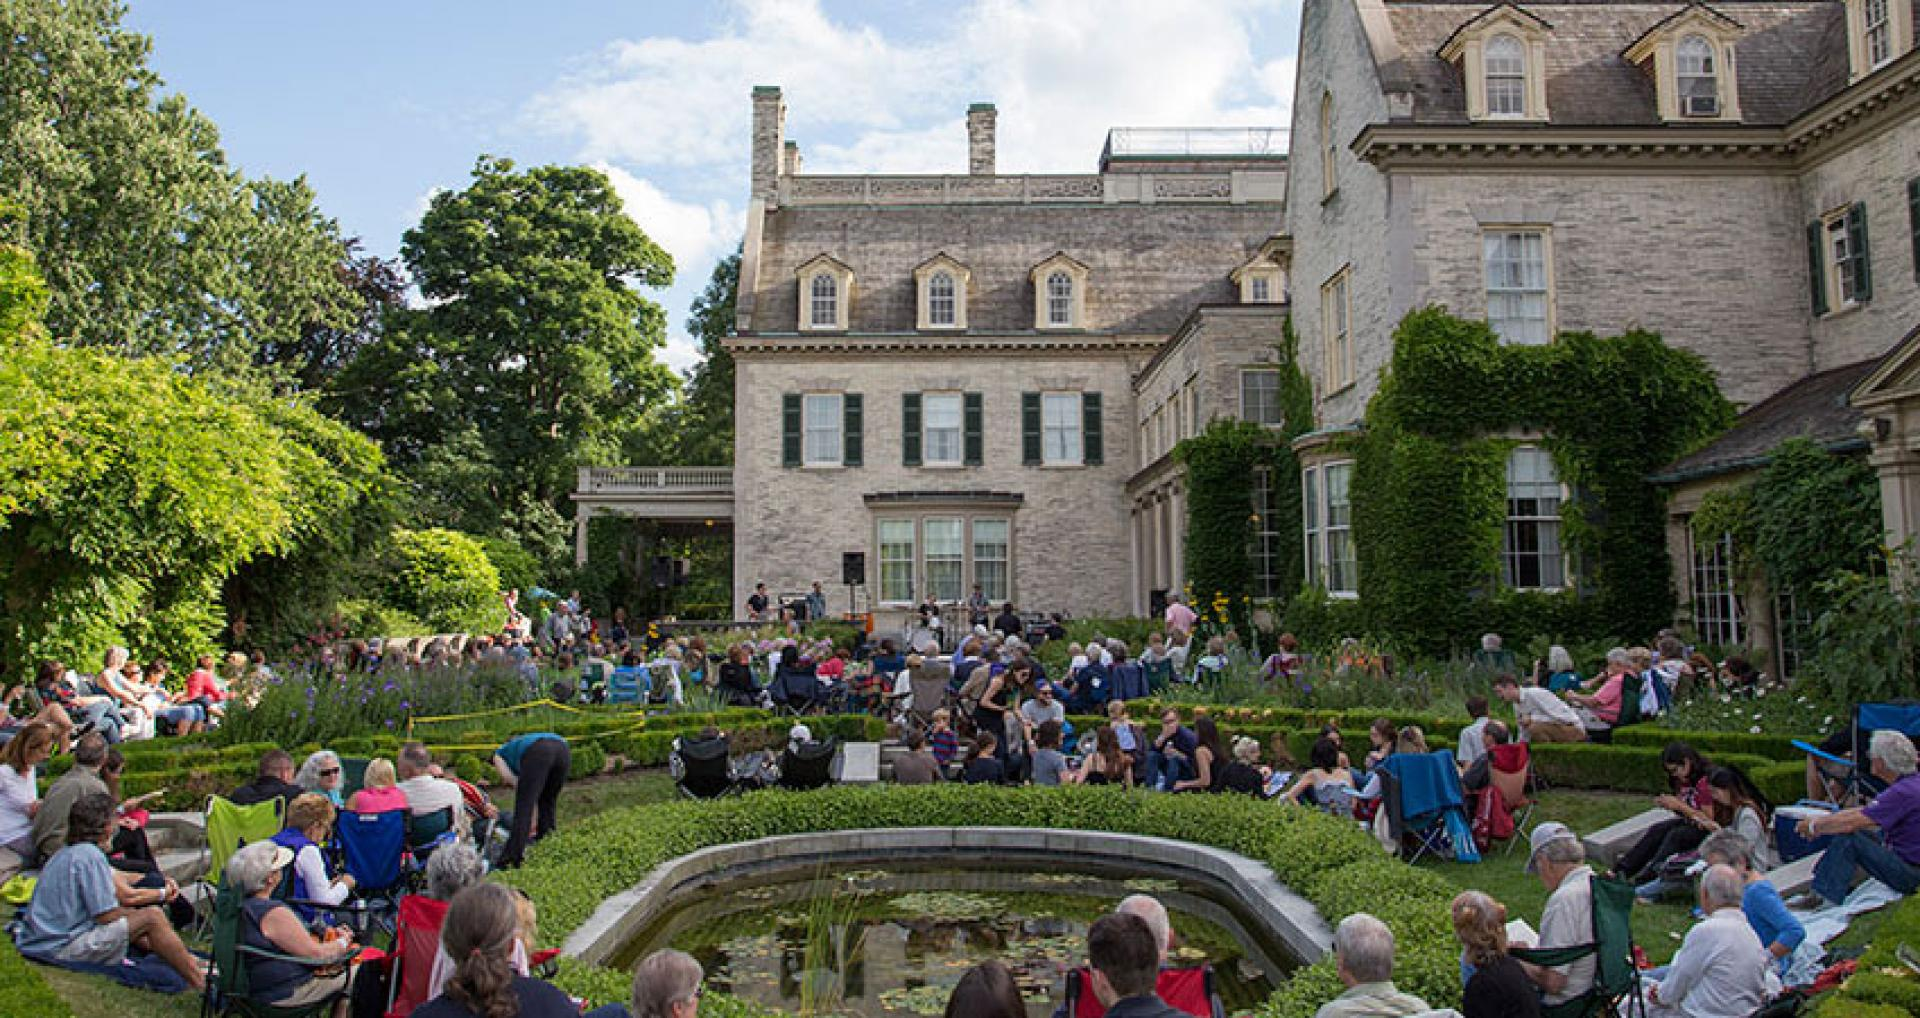 View of the mansion from the Townson Terrace garden during a garden concert